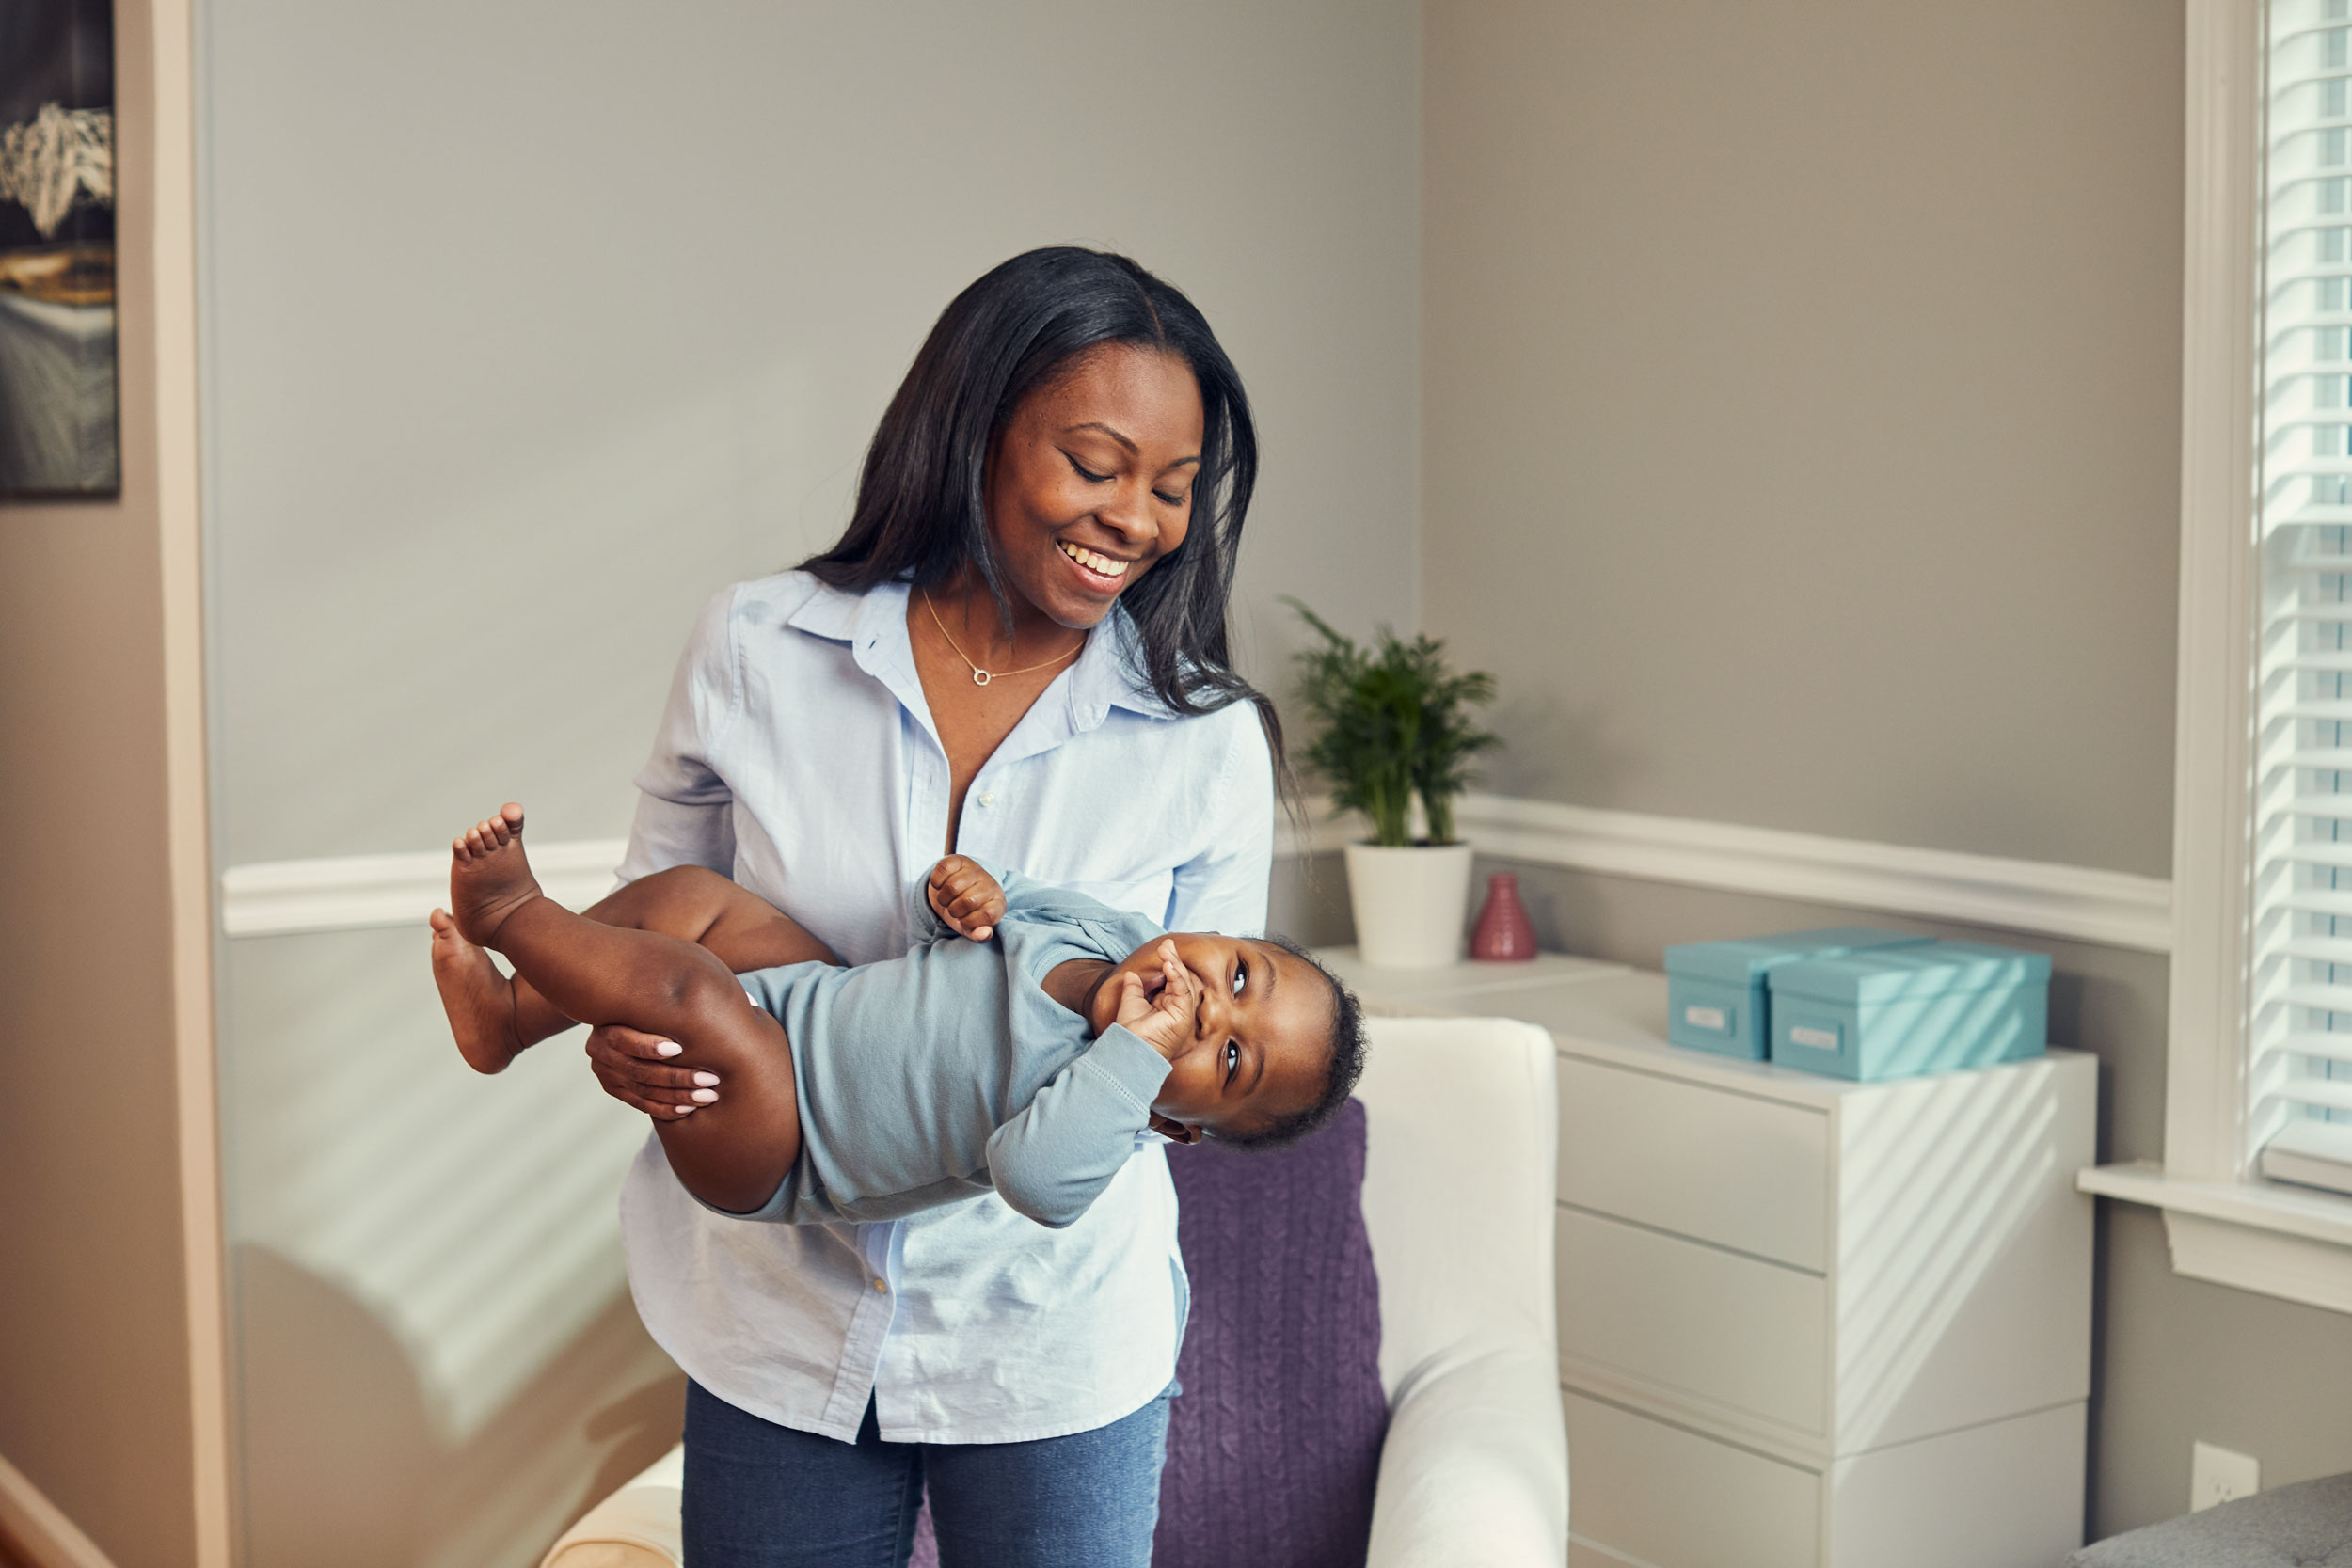 mom swinging baby in room, washington dc commercial photography